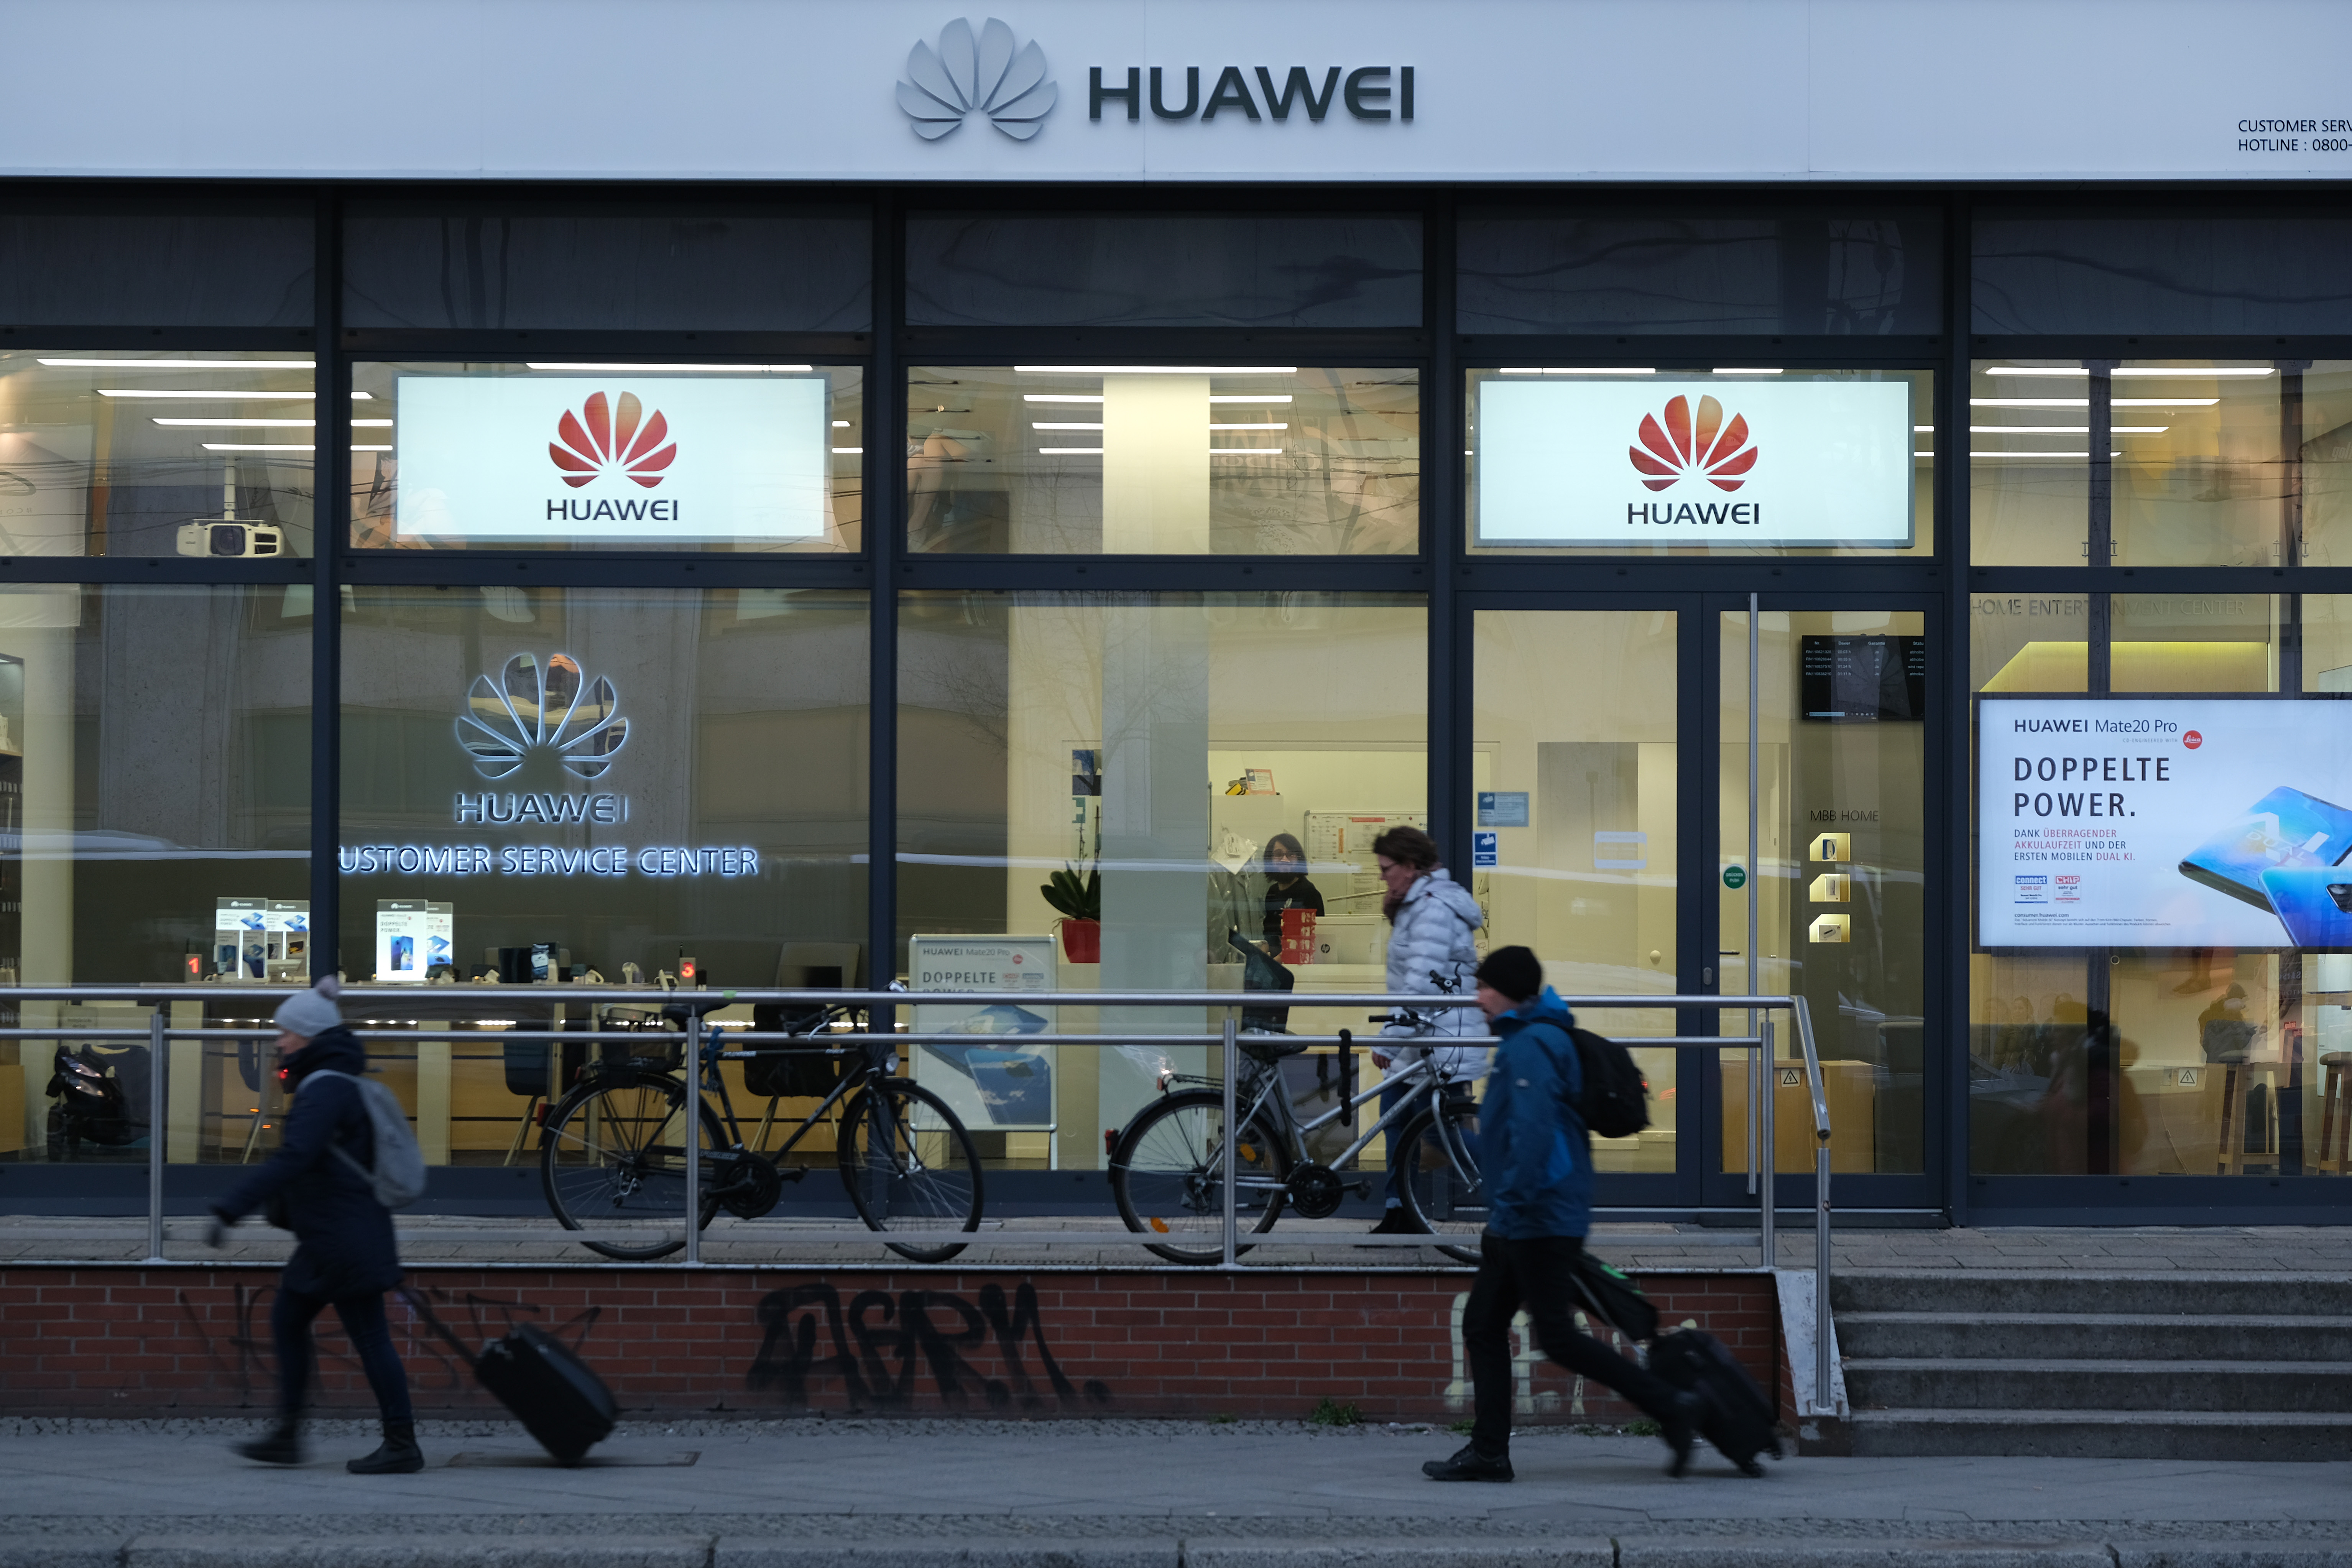 Trump's executive order may be aimed at Huawei, but its impact could be far wider